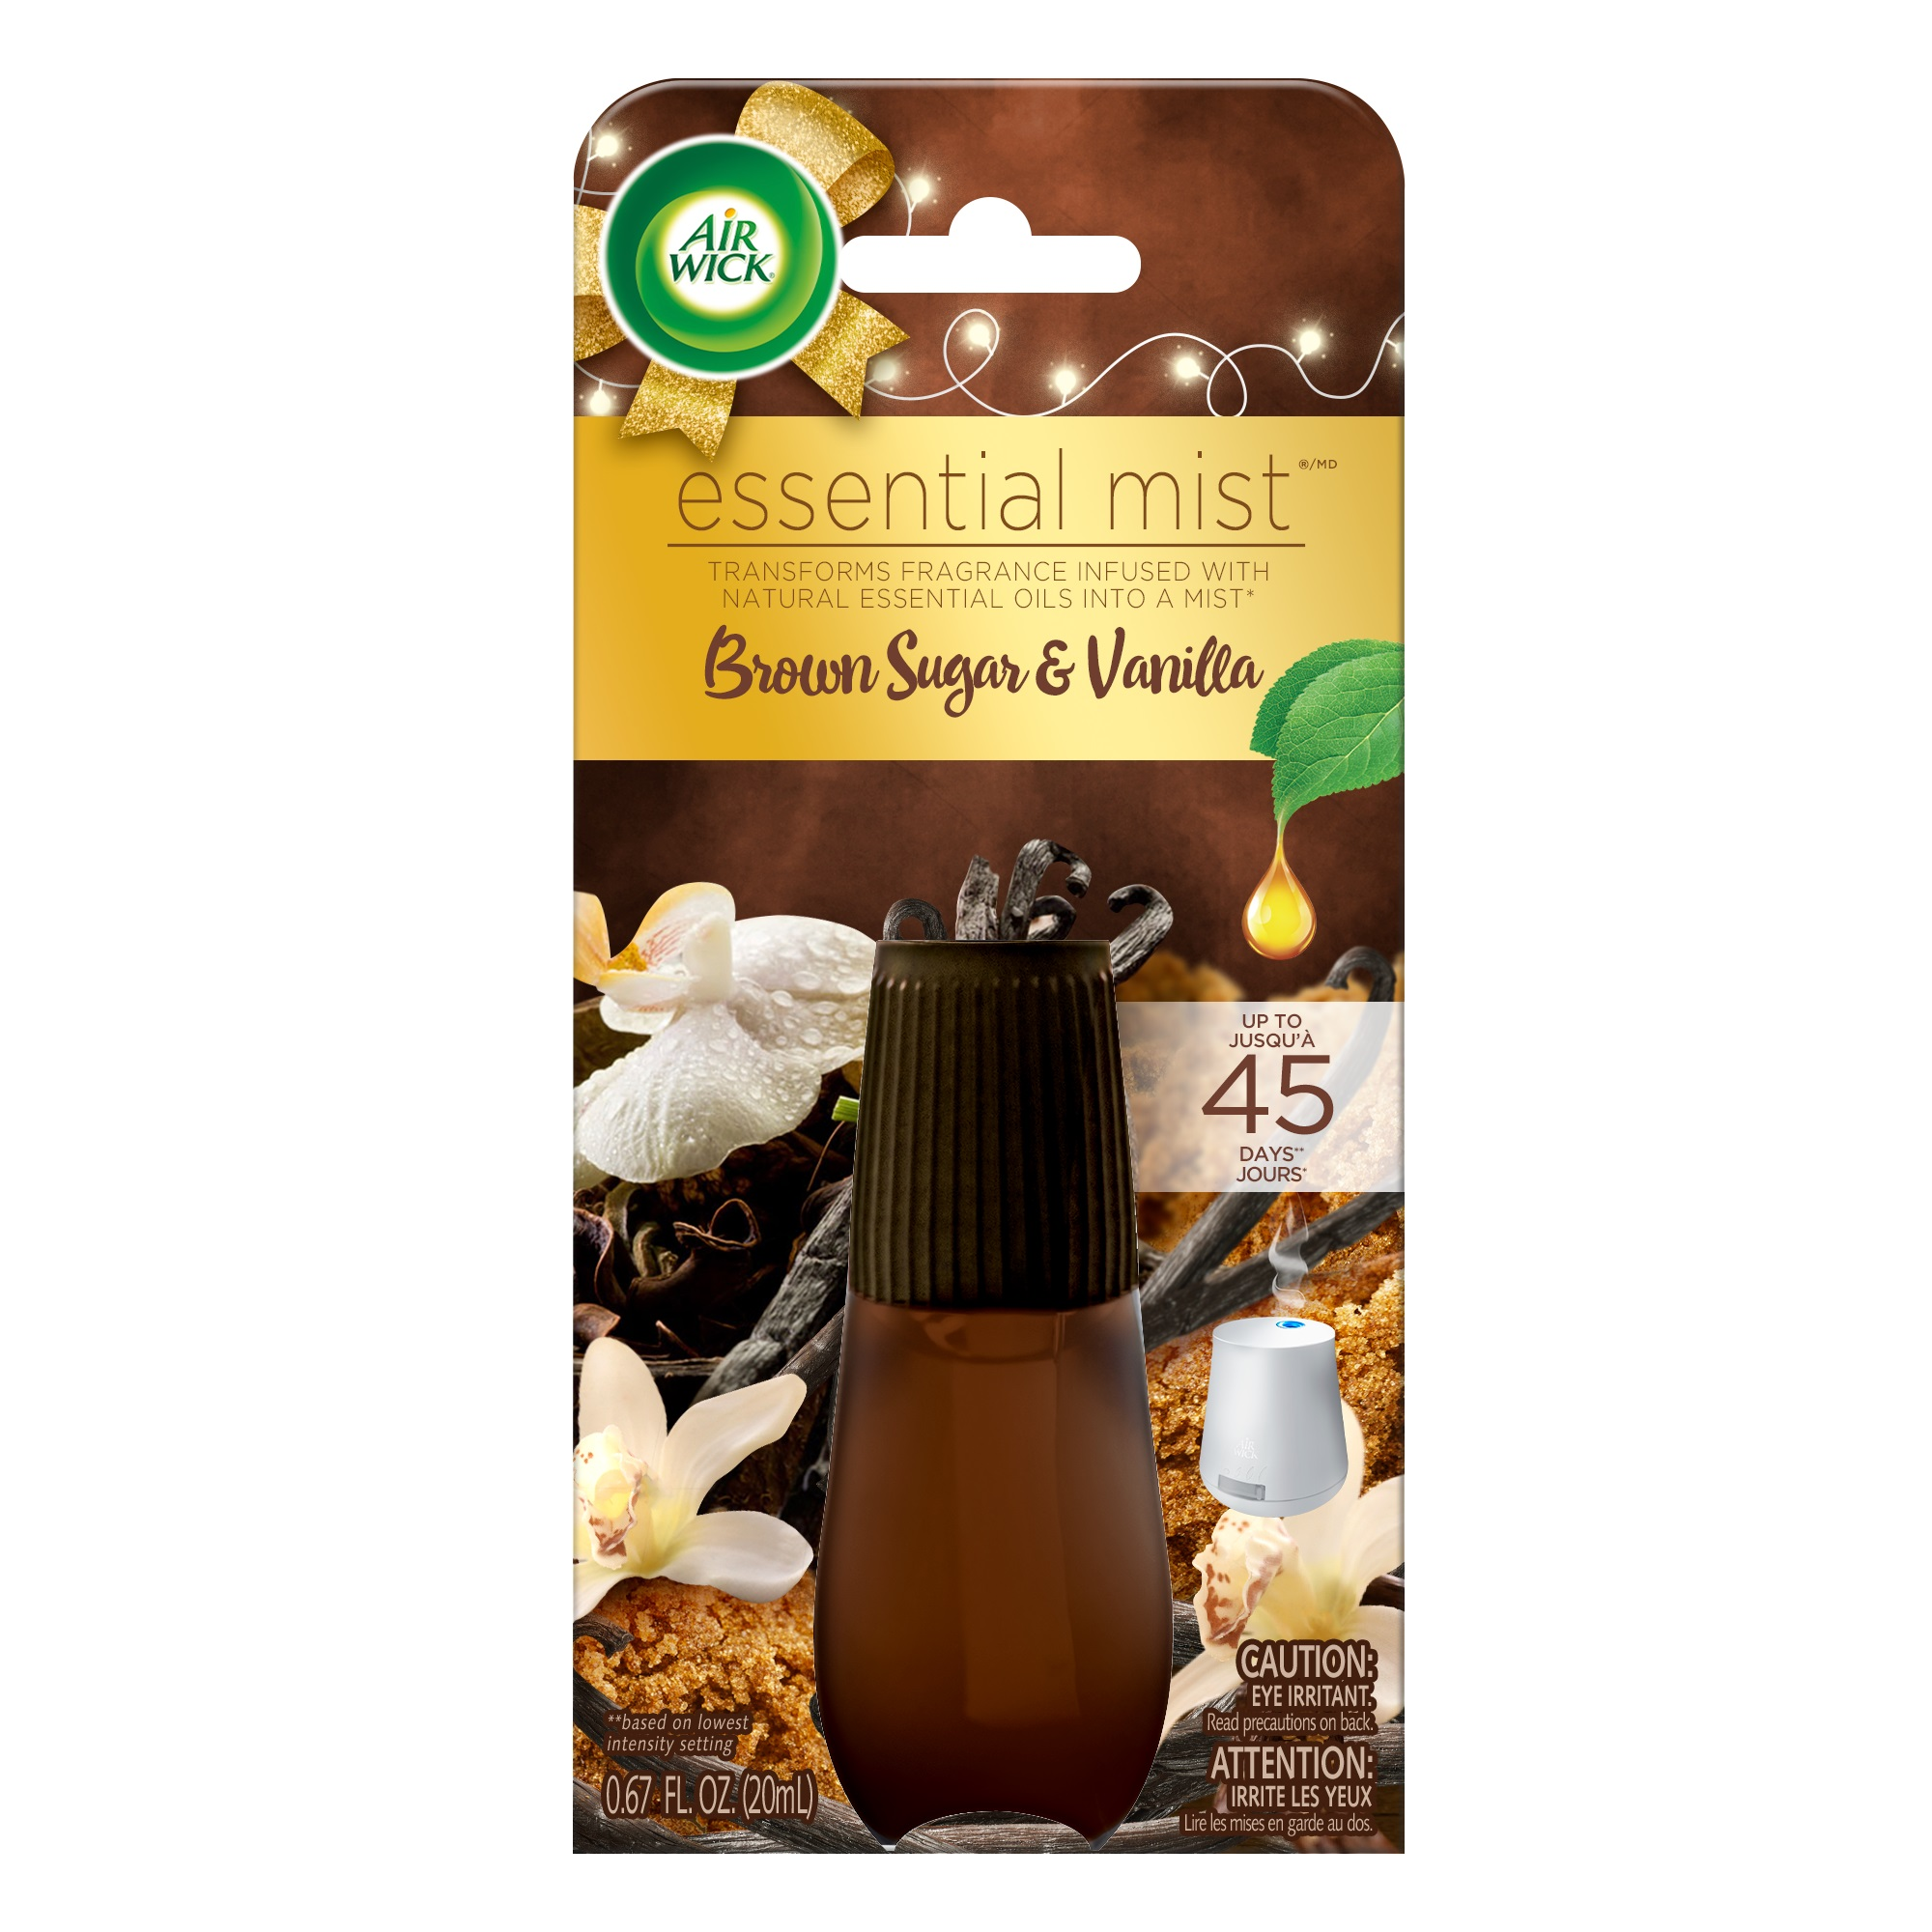 AIR WICK® Essential Mist - Brown Sugar & Vanilla